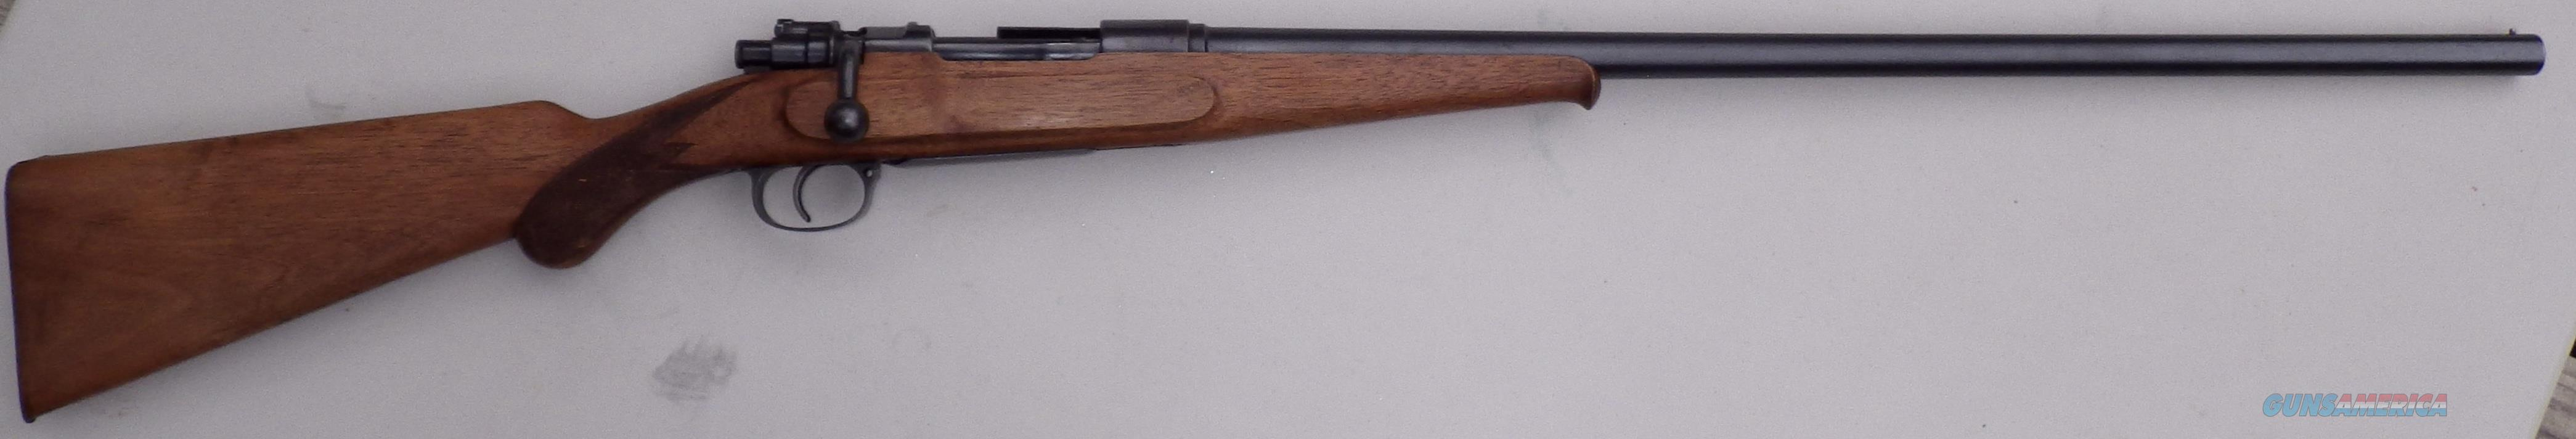 Mauser Hard Hit Heart Model 98 bolt action 12 gauge, good condition  Guns > Shotguns > MN Misc Shotguns